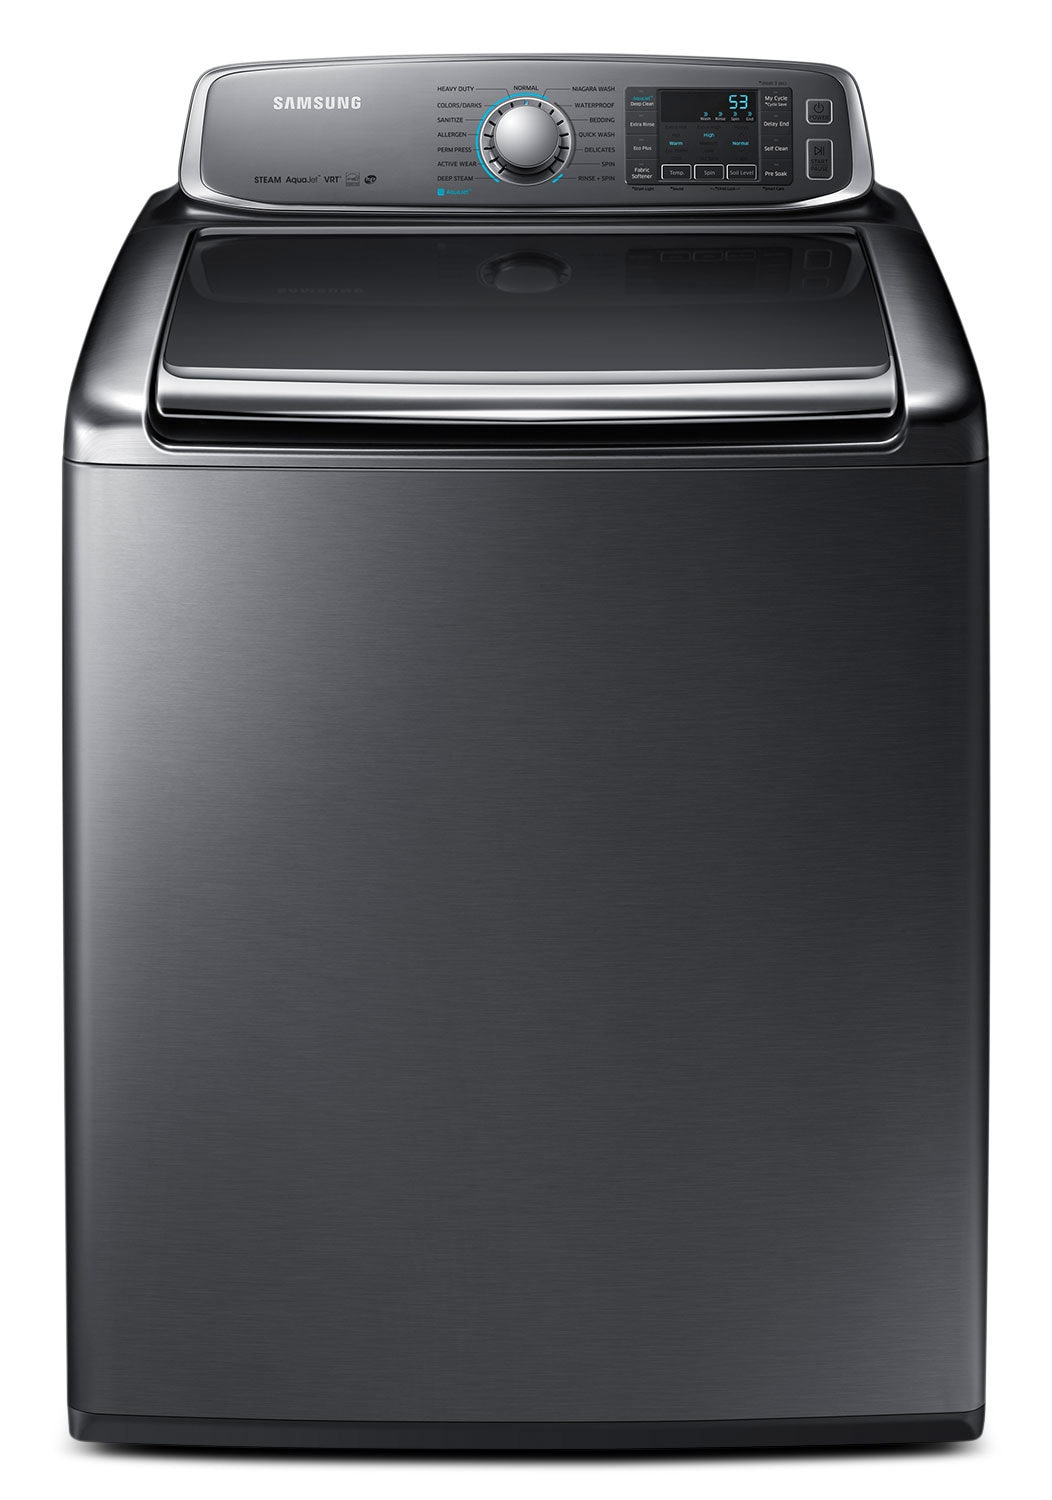 Washers and Dryers - Samsung Platinum Top-Load Washer (6.5 Cu. Ft. IEC) - WA56H9000AP